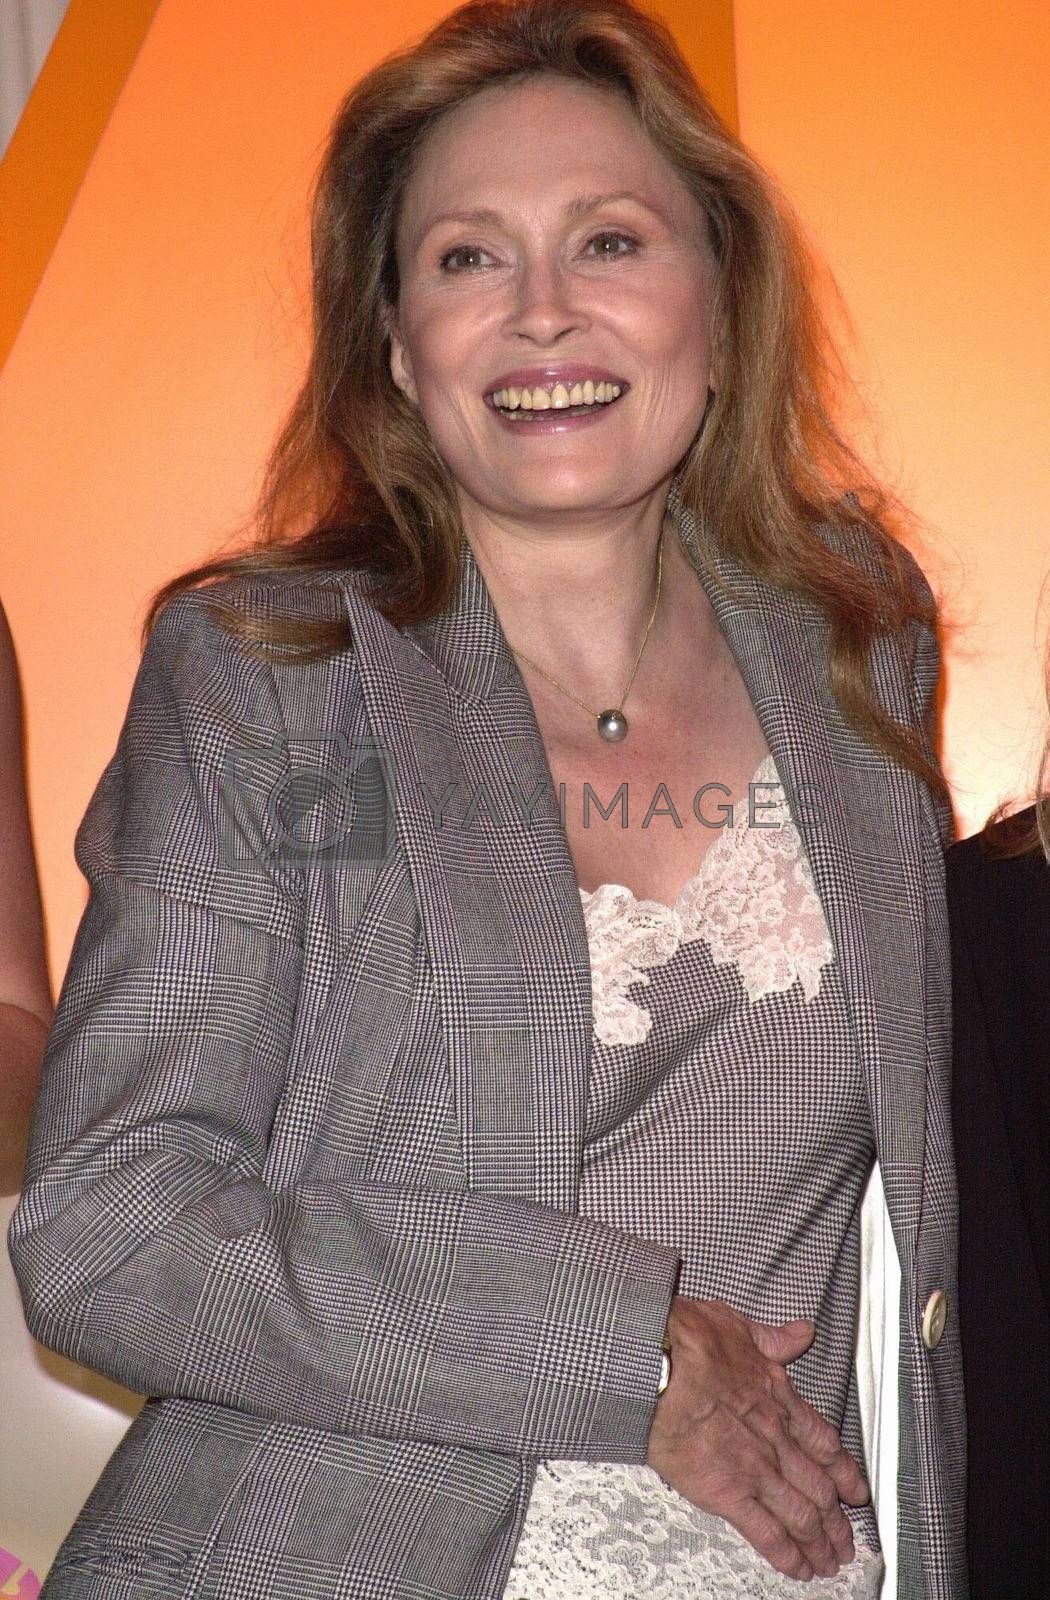 Faye Dunaway at the unveiling of the new name for Romance Classics Television in Los Angeles, 11-29-00